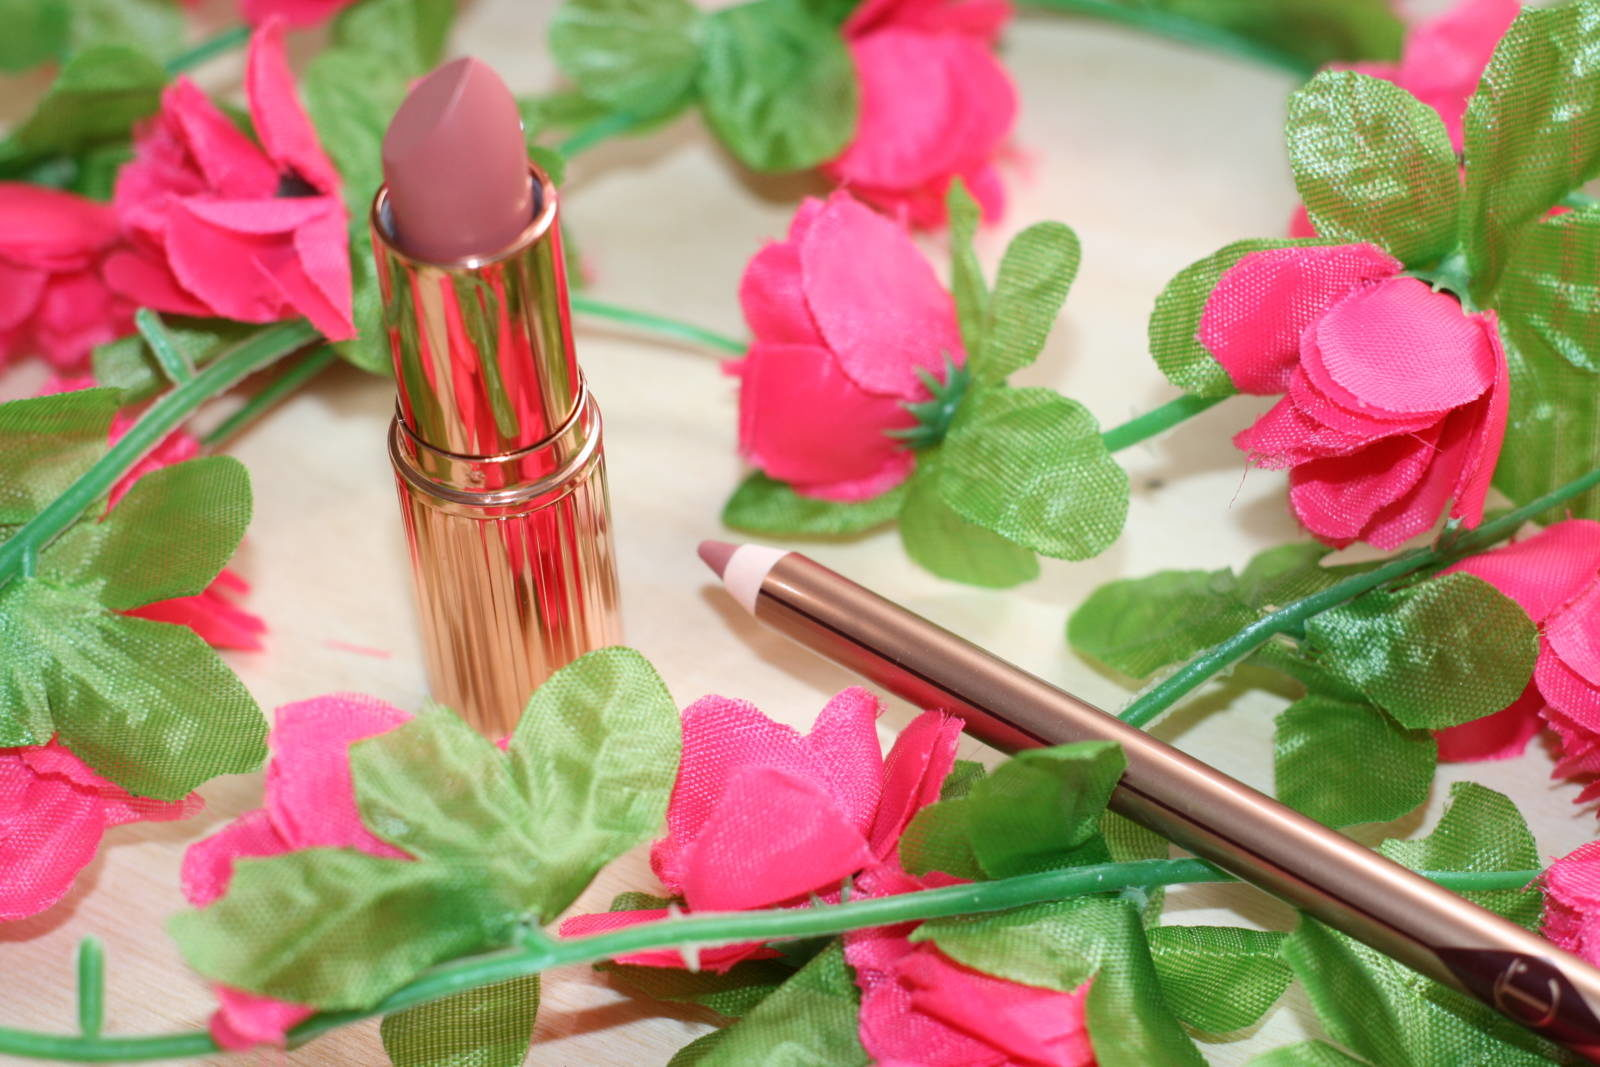 Charlotte Tilbury The Complete Natural, Glowing Look Lips